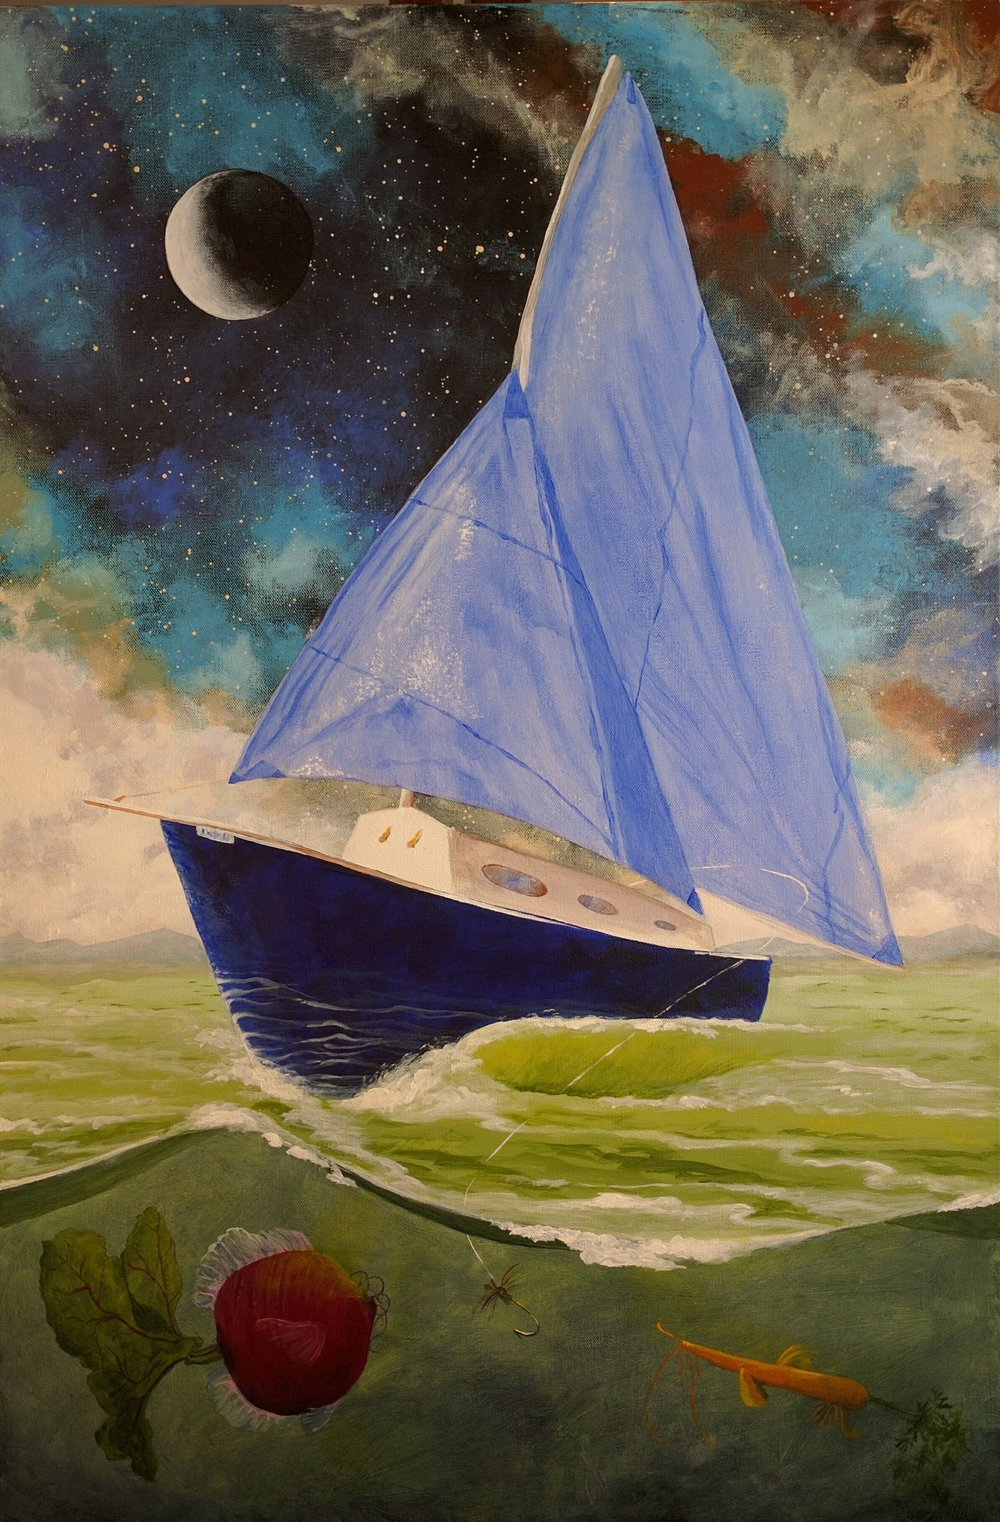 - Odyssey, 2016, Acrylic, 24 x 26My father passed away too early in life at the age of 65. He was the most courageous and unlimited person I have know. He pursued his interests without fear of judgment or an ounce of embarrassment. After his death I decided to paint an epic portrait of the boat he built by hand combined with his other hobbies, which were: fly fishing, fly tying, gardening, and astronomy.